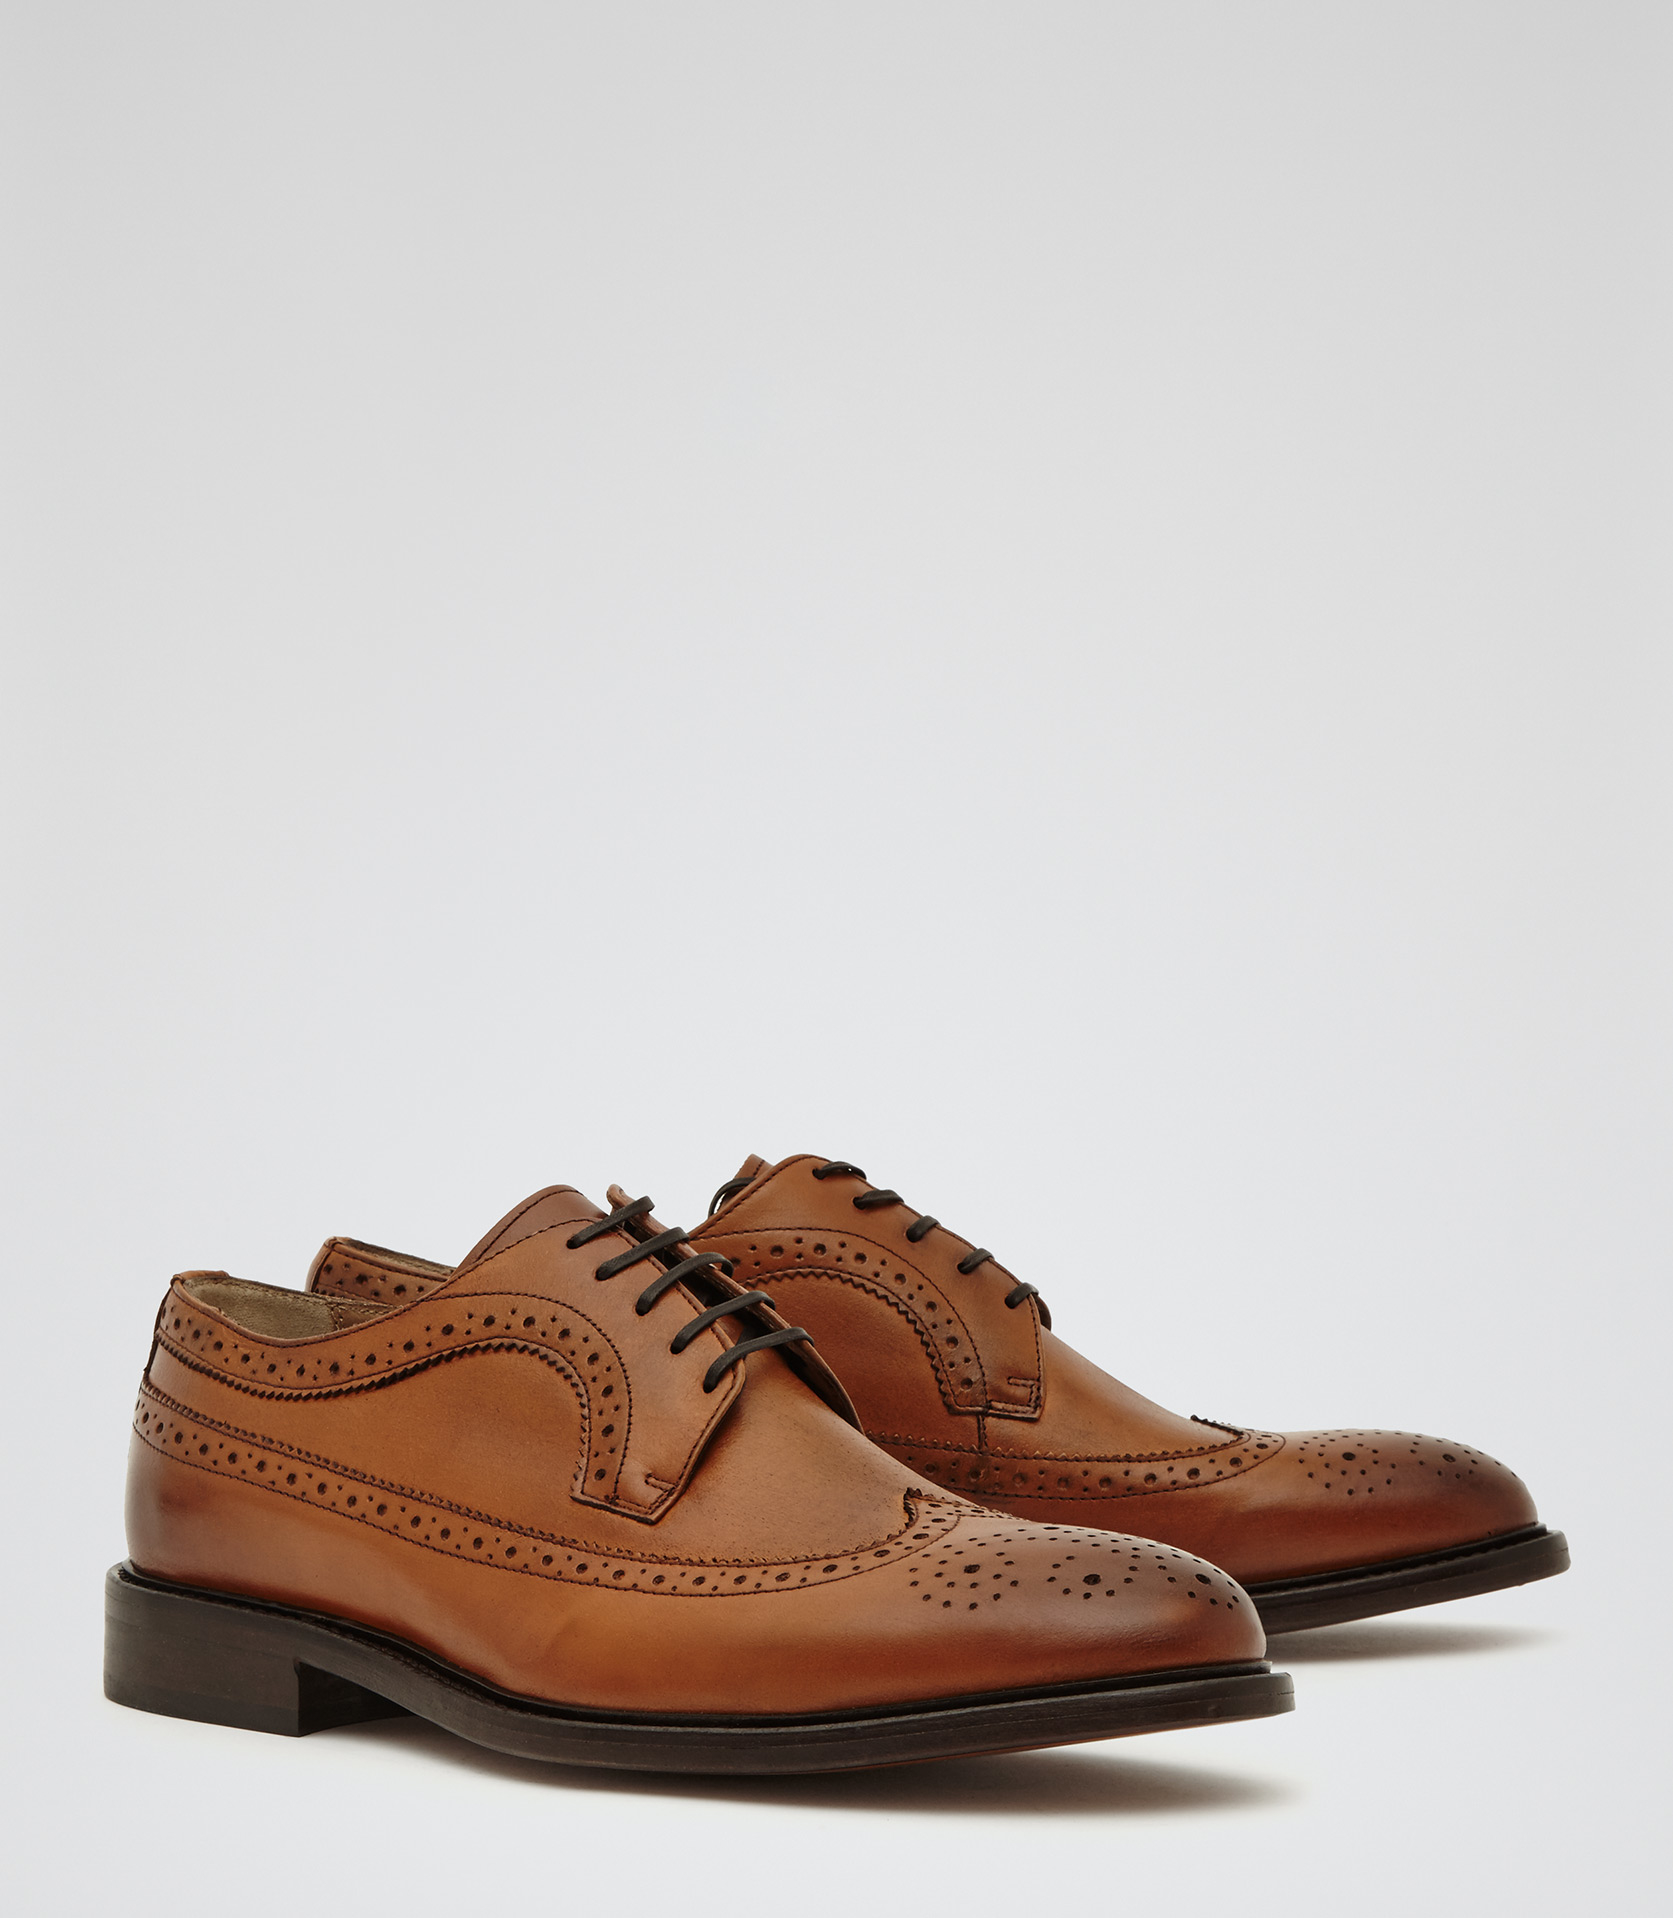 06681c58e3fb Lyst - Reiss Ash Longwing Leather Brogues in Brown for Men